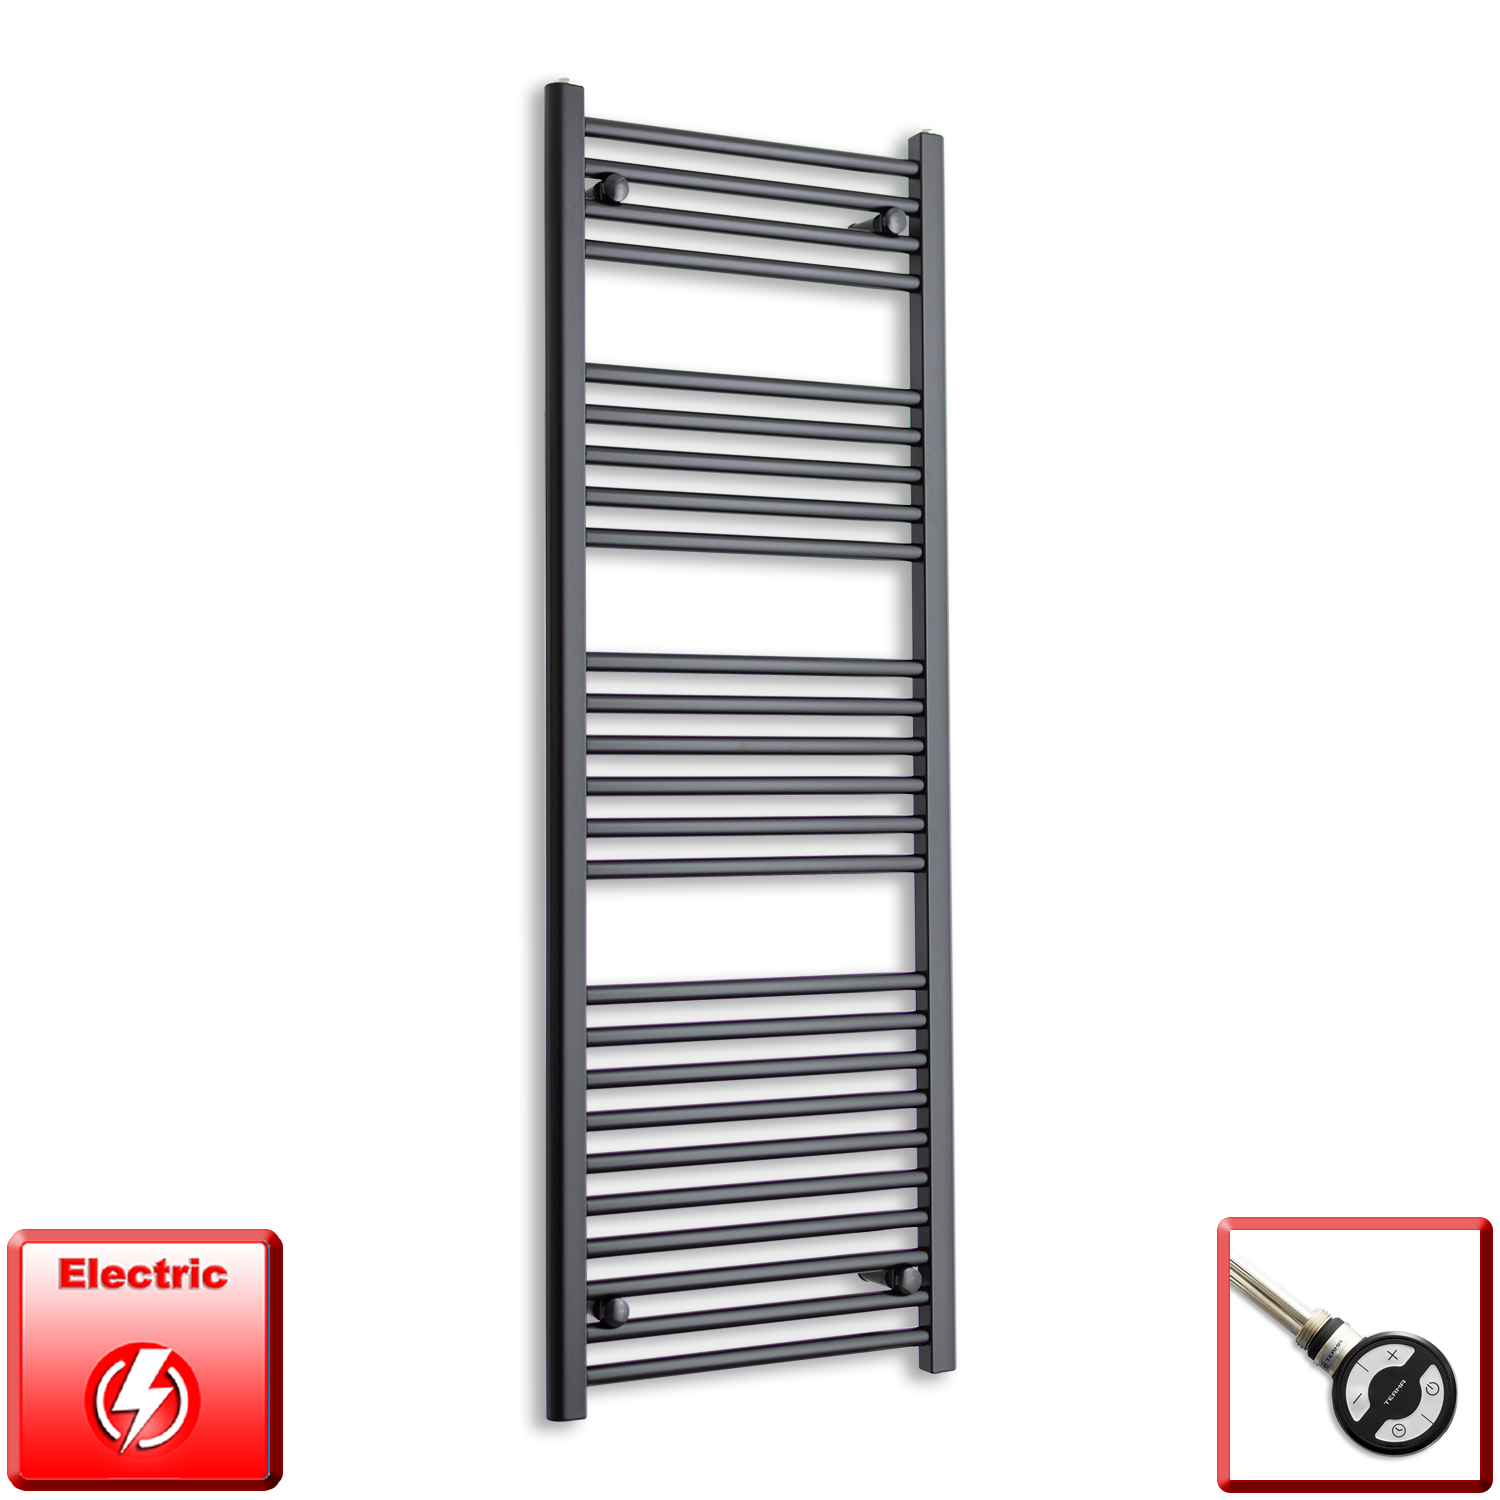 600mm Wide 1400mm High Flat Black Pre-Filled Electric Heated Towel Rail Radiator HTR,MOA Thermostatic Element